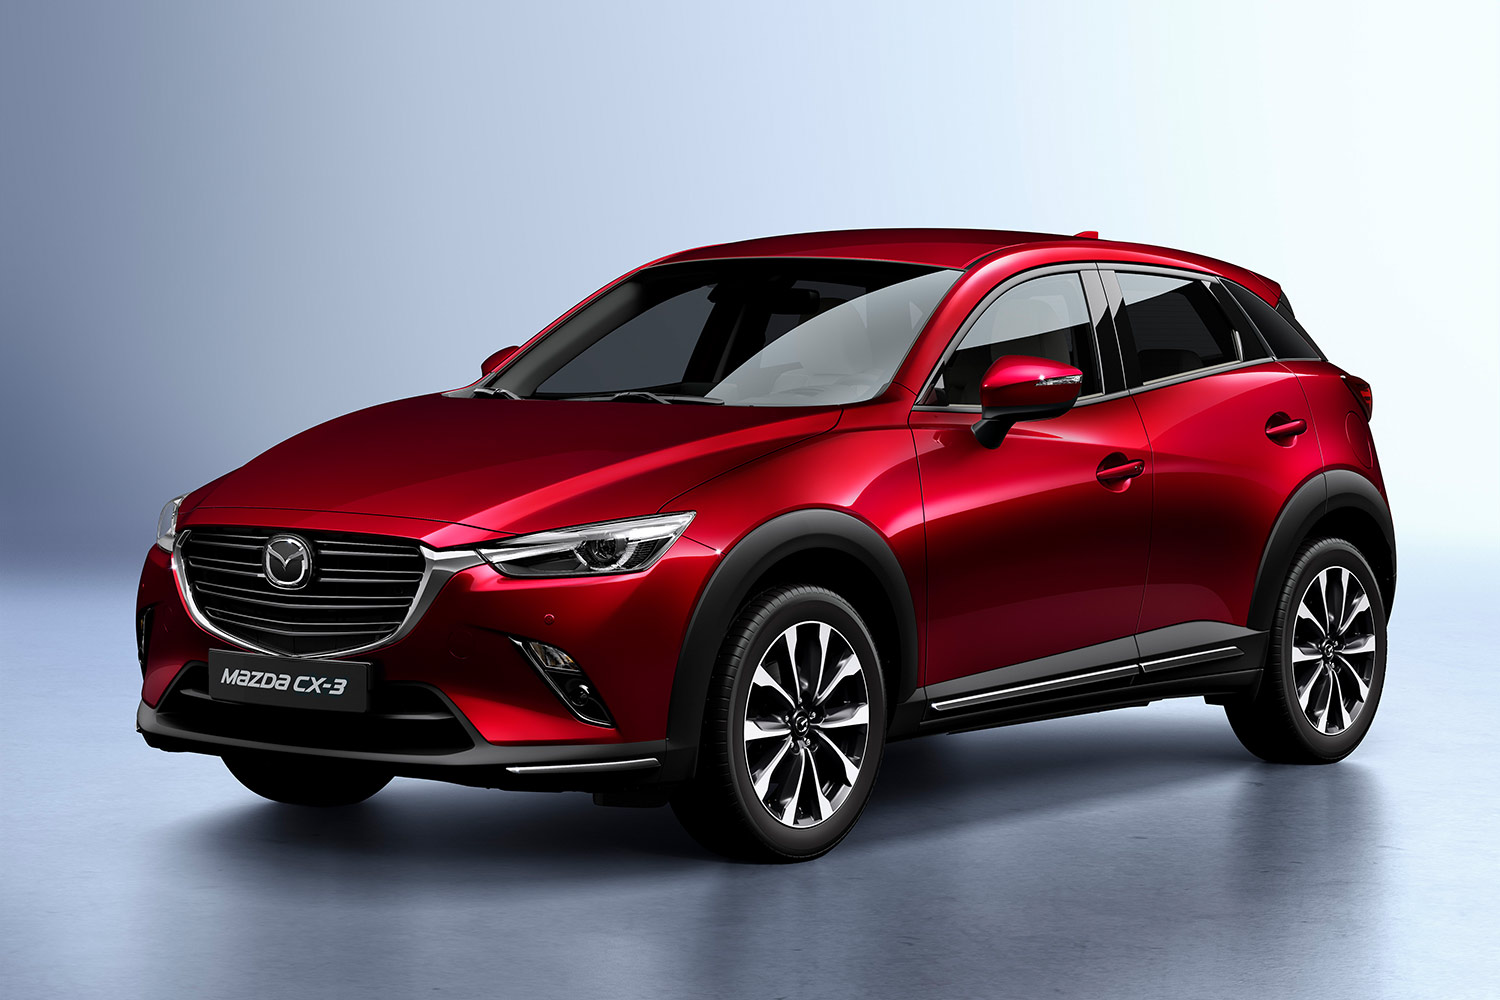 2020 Mazda CX-3 Release Date and Concept